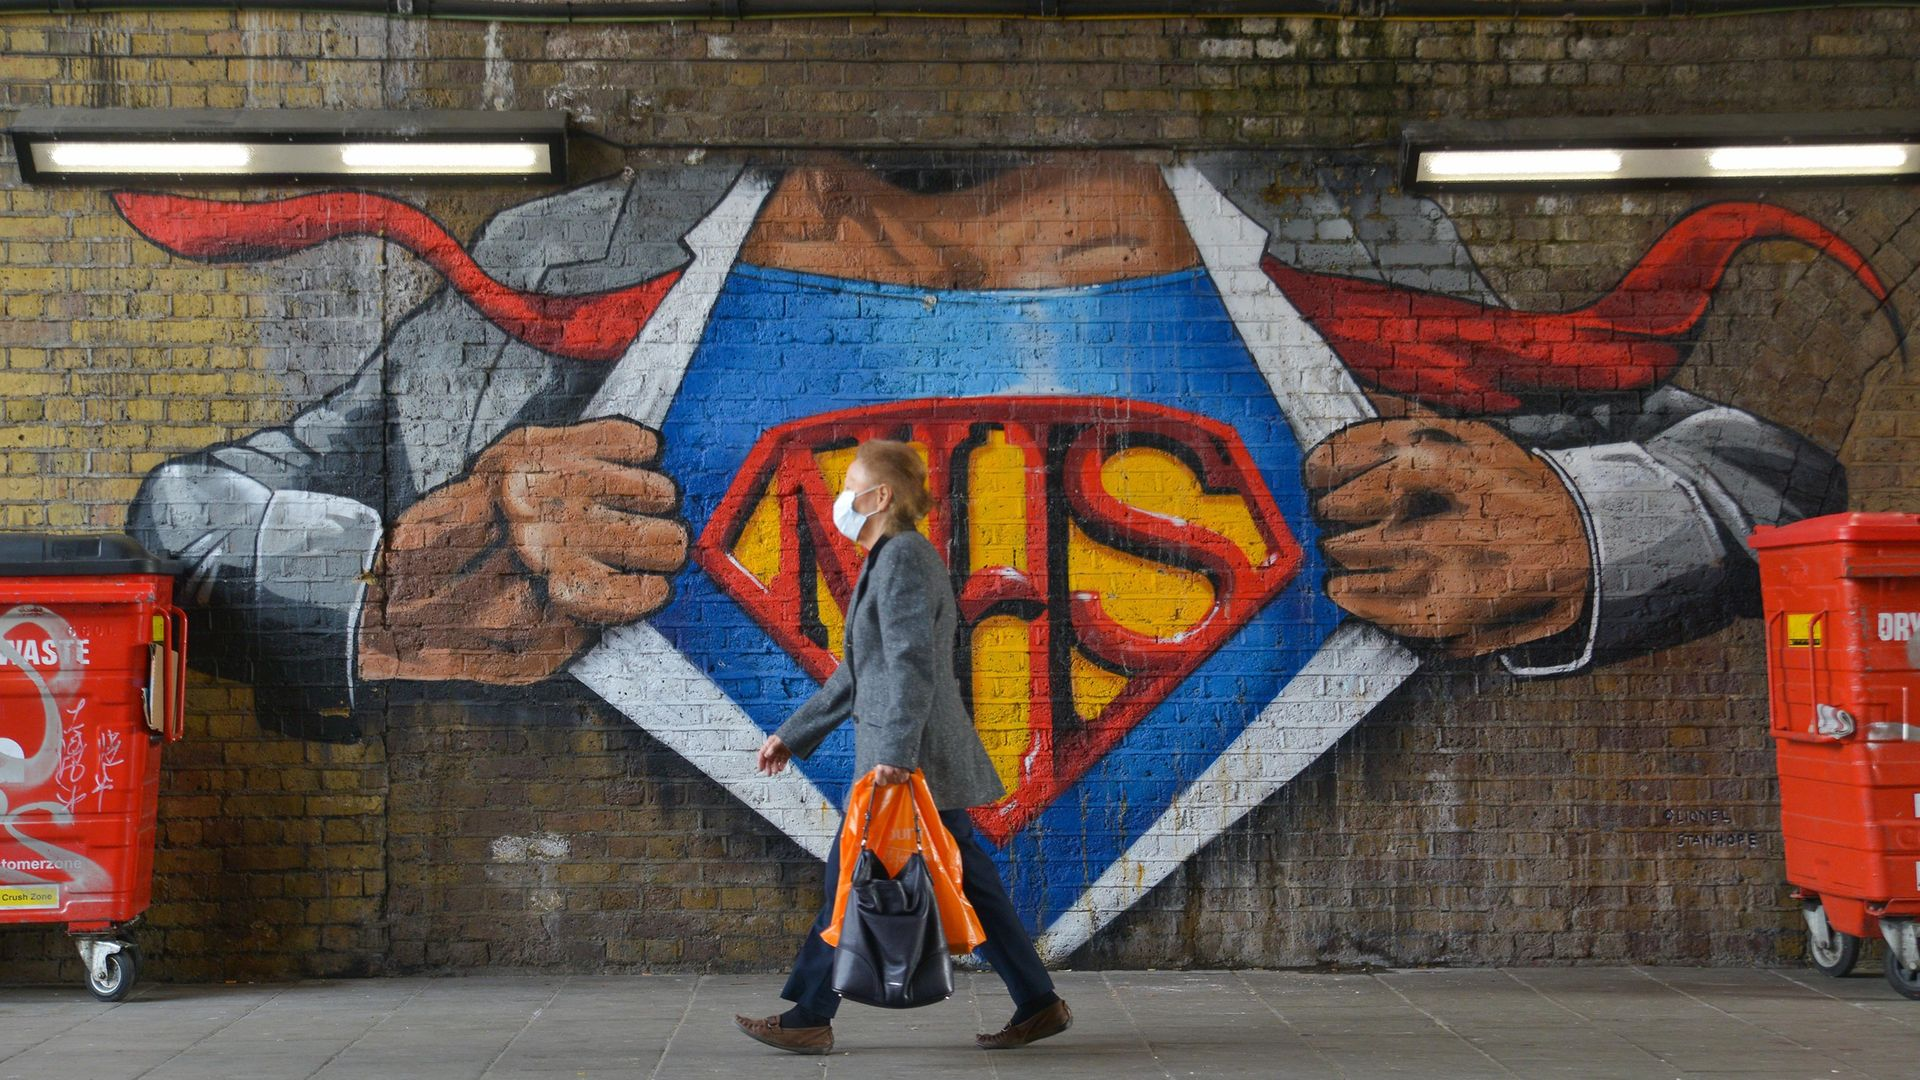 A woman wearing a face mask as a precaution against the spread of Covid-19 walks past a graffiti tribute to the NHS in Waterloo, London - Credit: Photo by Thomas Krych/SOPA Images/LightRocket via Getty Images